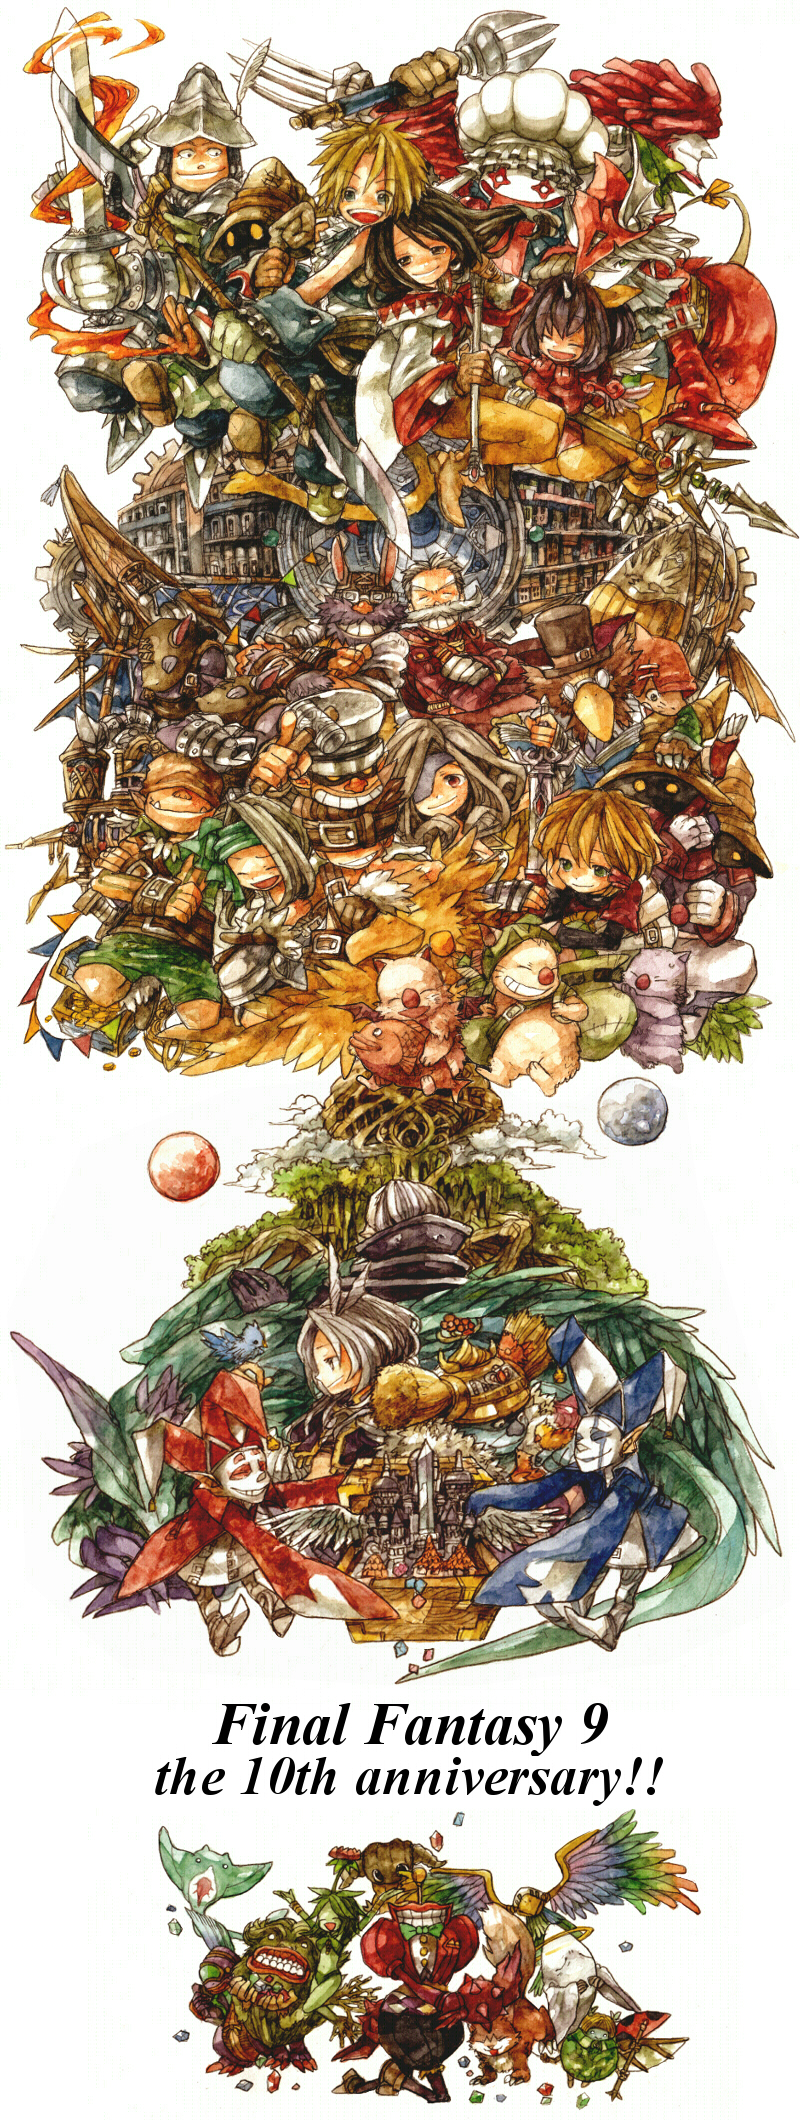 adelbert_steiner alexander alexander_(final_fantasy) beatrix black_hair black_mage blonde_hair brahne_raza_alexandros_xvi brown_hair character_request cid_fabool_ix eiko_carol everyone final_fantasy final_fantasy_ix fork freija_crescent garland_(ff9) garnet_til_alexandros_xvii gloves highres ina_(gonsora) kuja mikoto monster moogle quina_quen salamander_coral short_hair sword tail thorn tree vivi_ornitier weapon white_mage zidane_tribal zorn